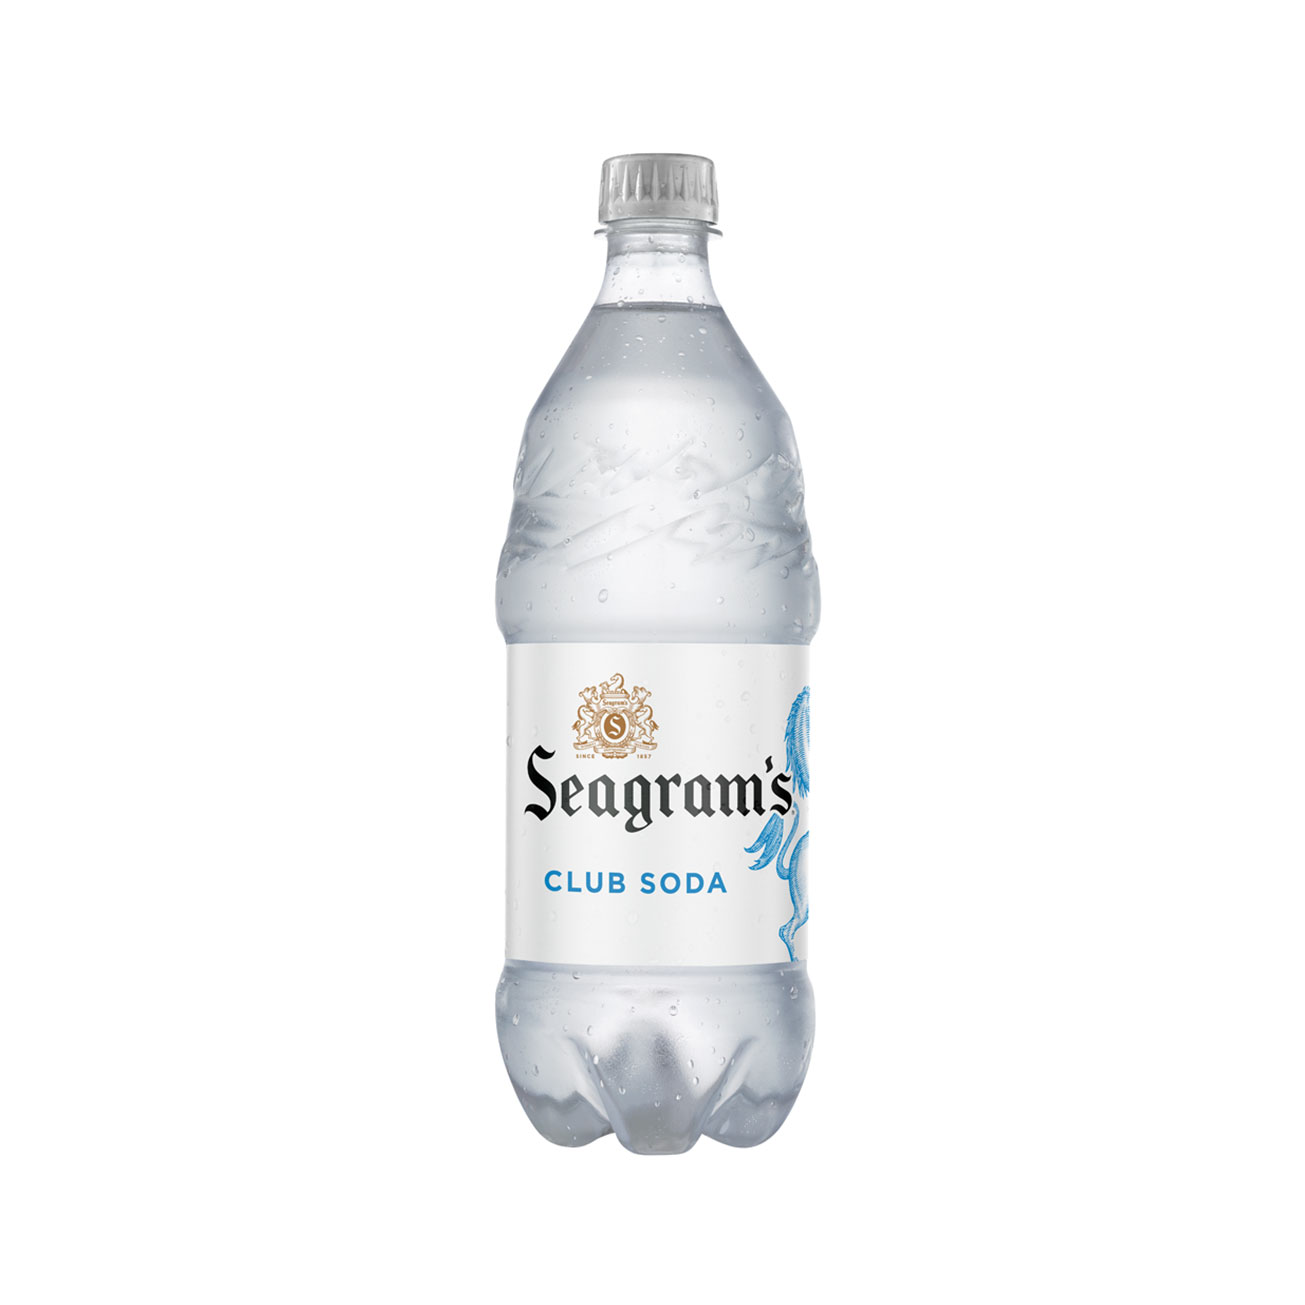 Is Sparkling Water A Soft Drink